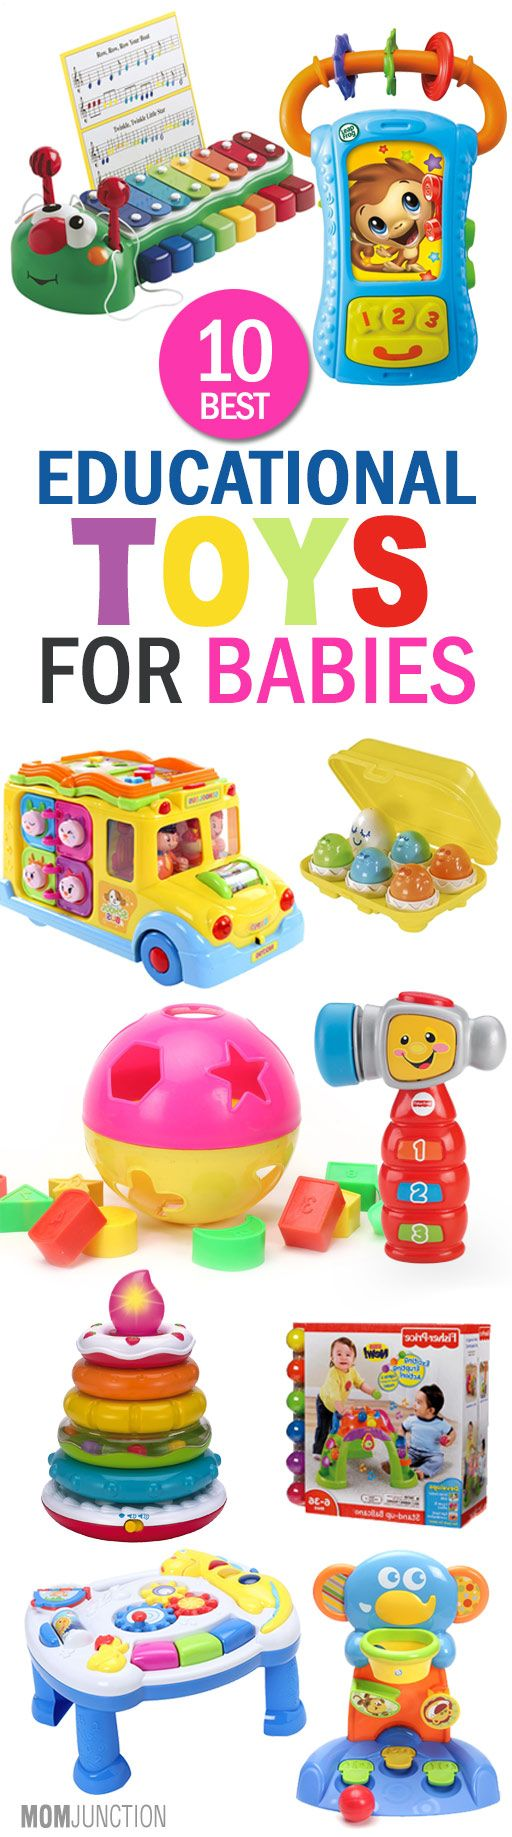 Best Learning Toys For Babies : Best baby toys ideas on pinterest learning